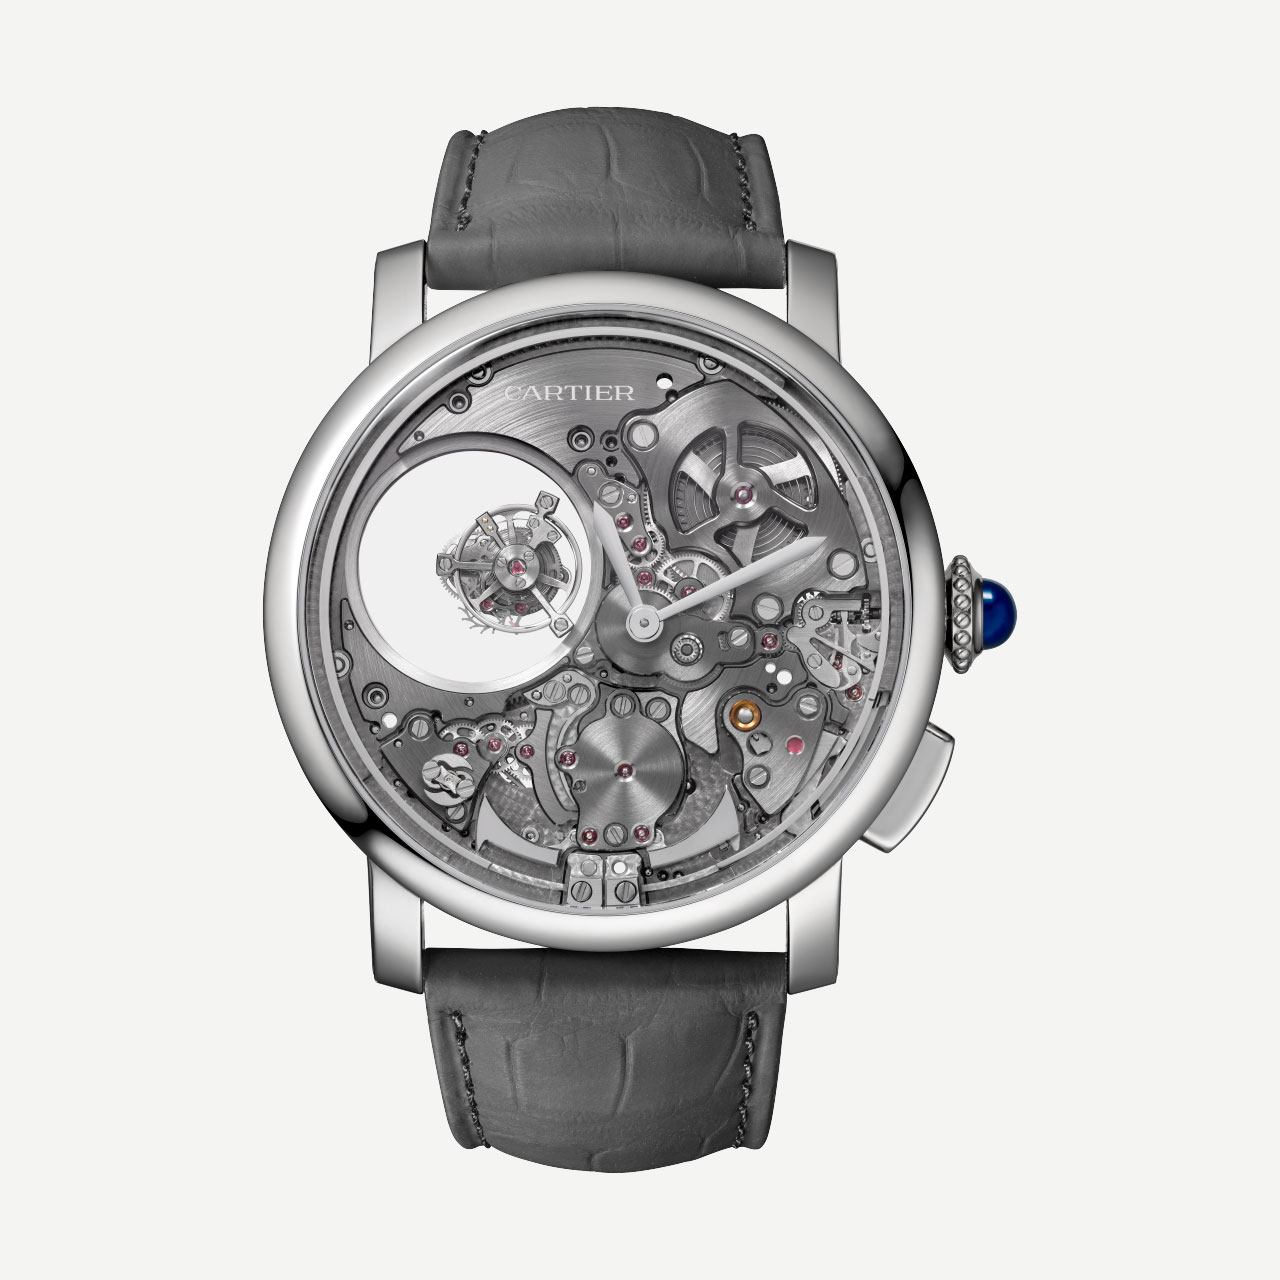 Cartier Minute Repeater Mysterious Double Tourbillon